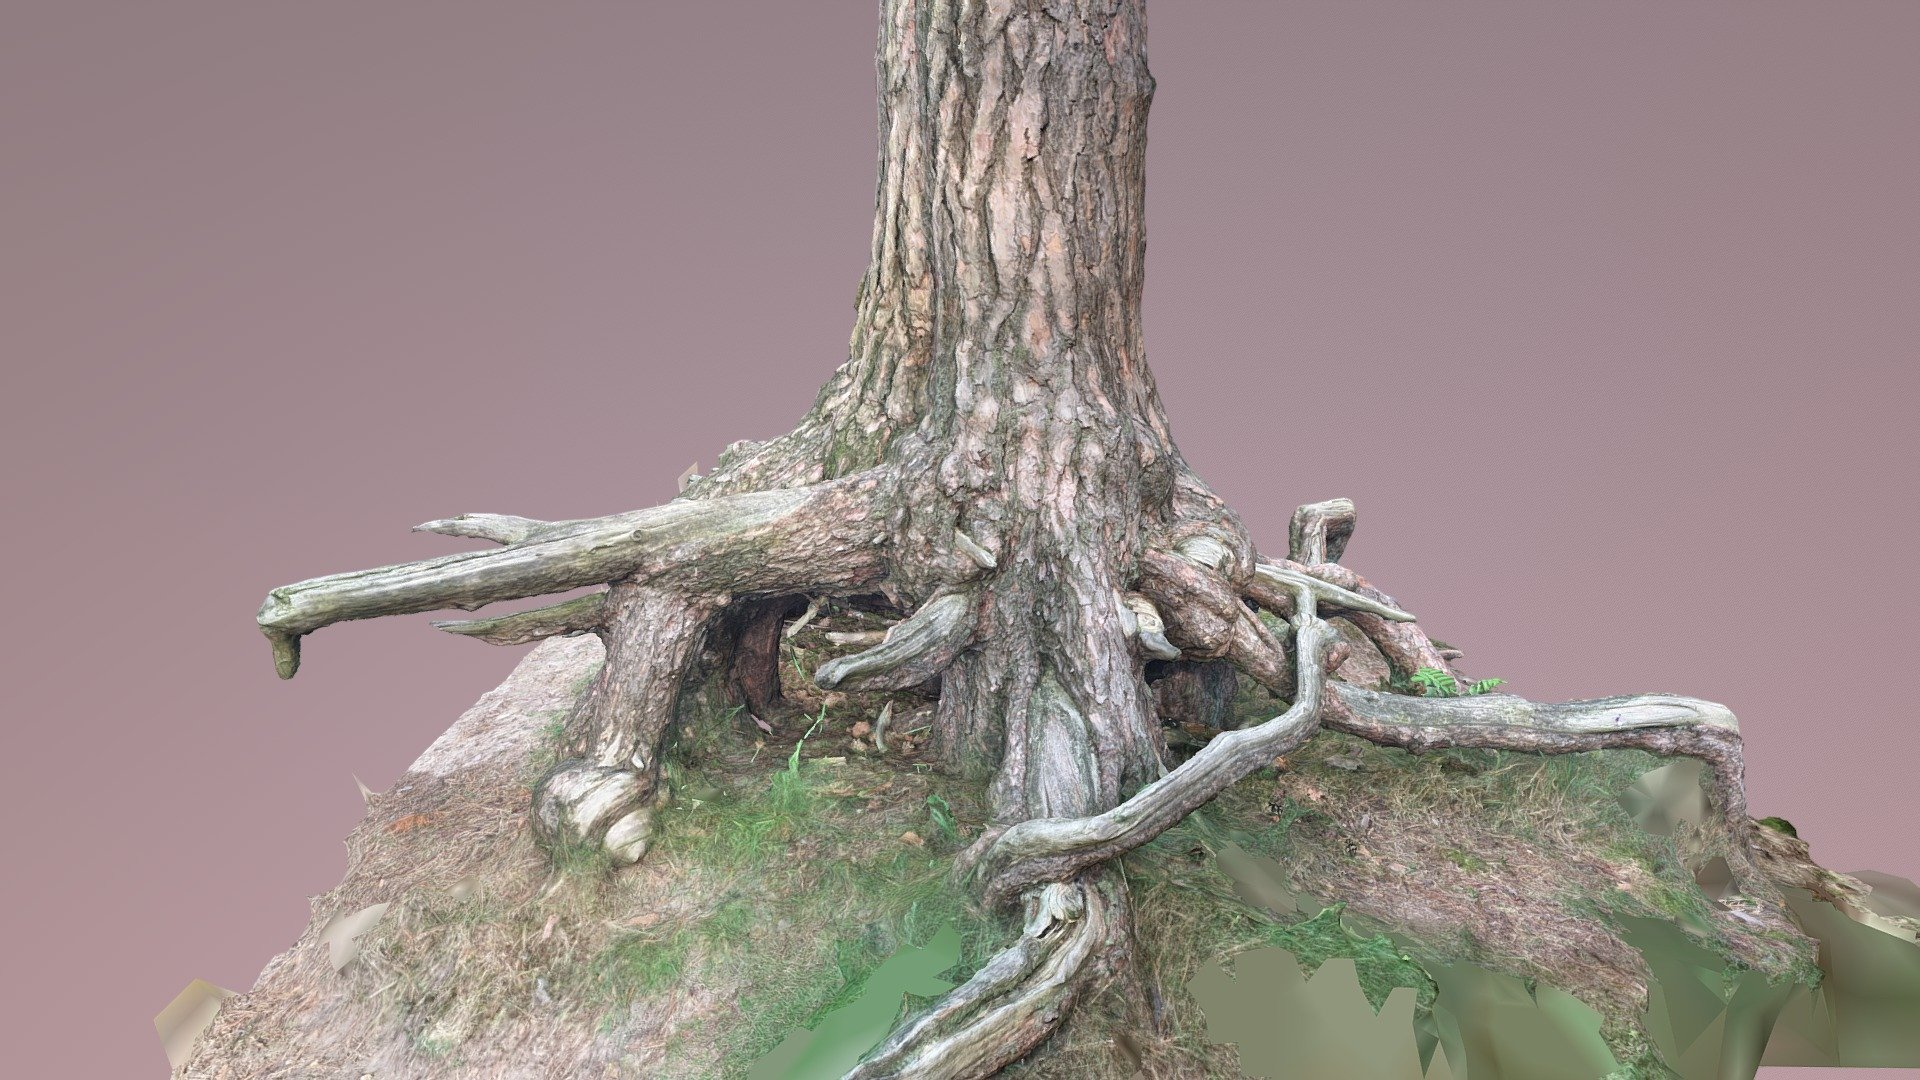 Gnarly Tree 3D Scan - Free download! - Download Free 3D